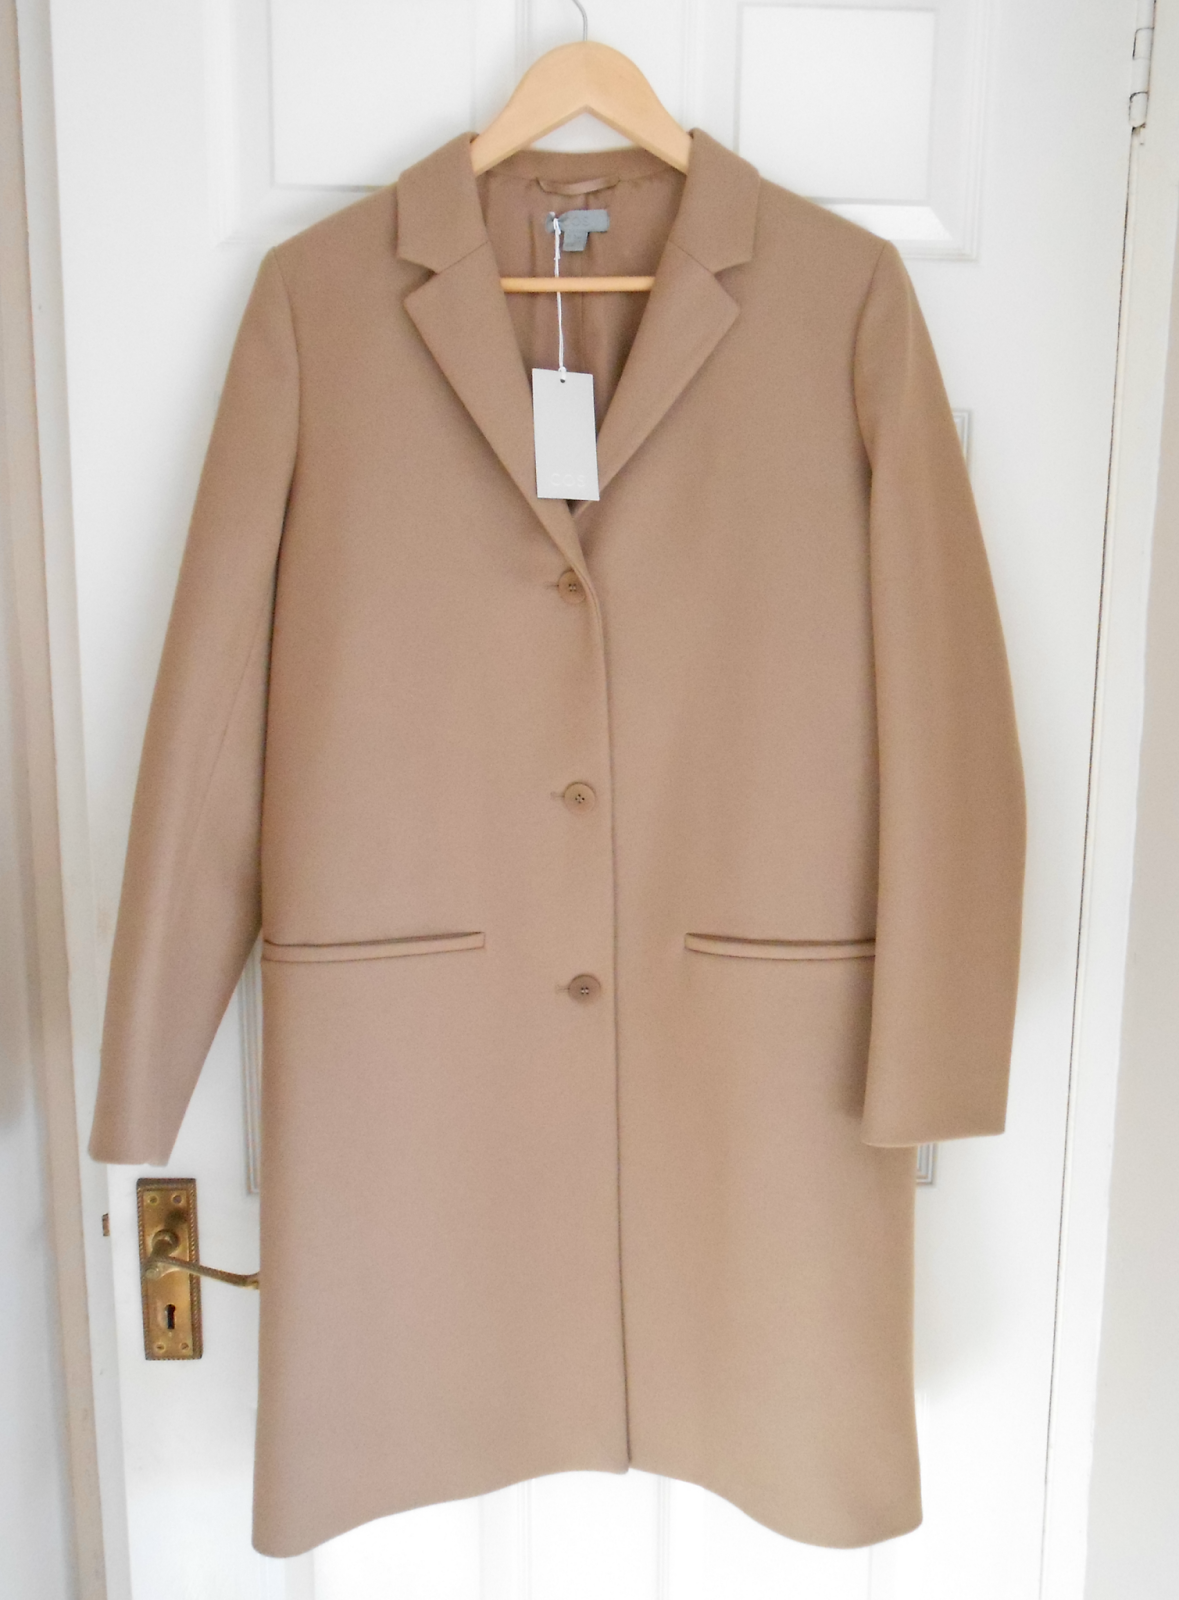 COS Tailored Wool Coat review and photos